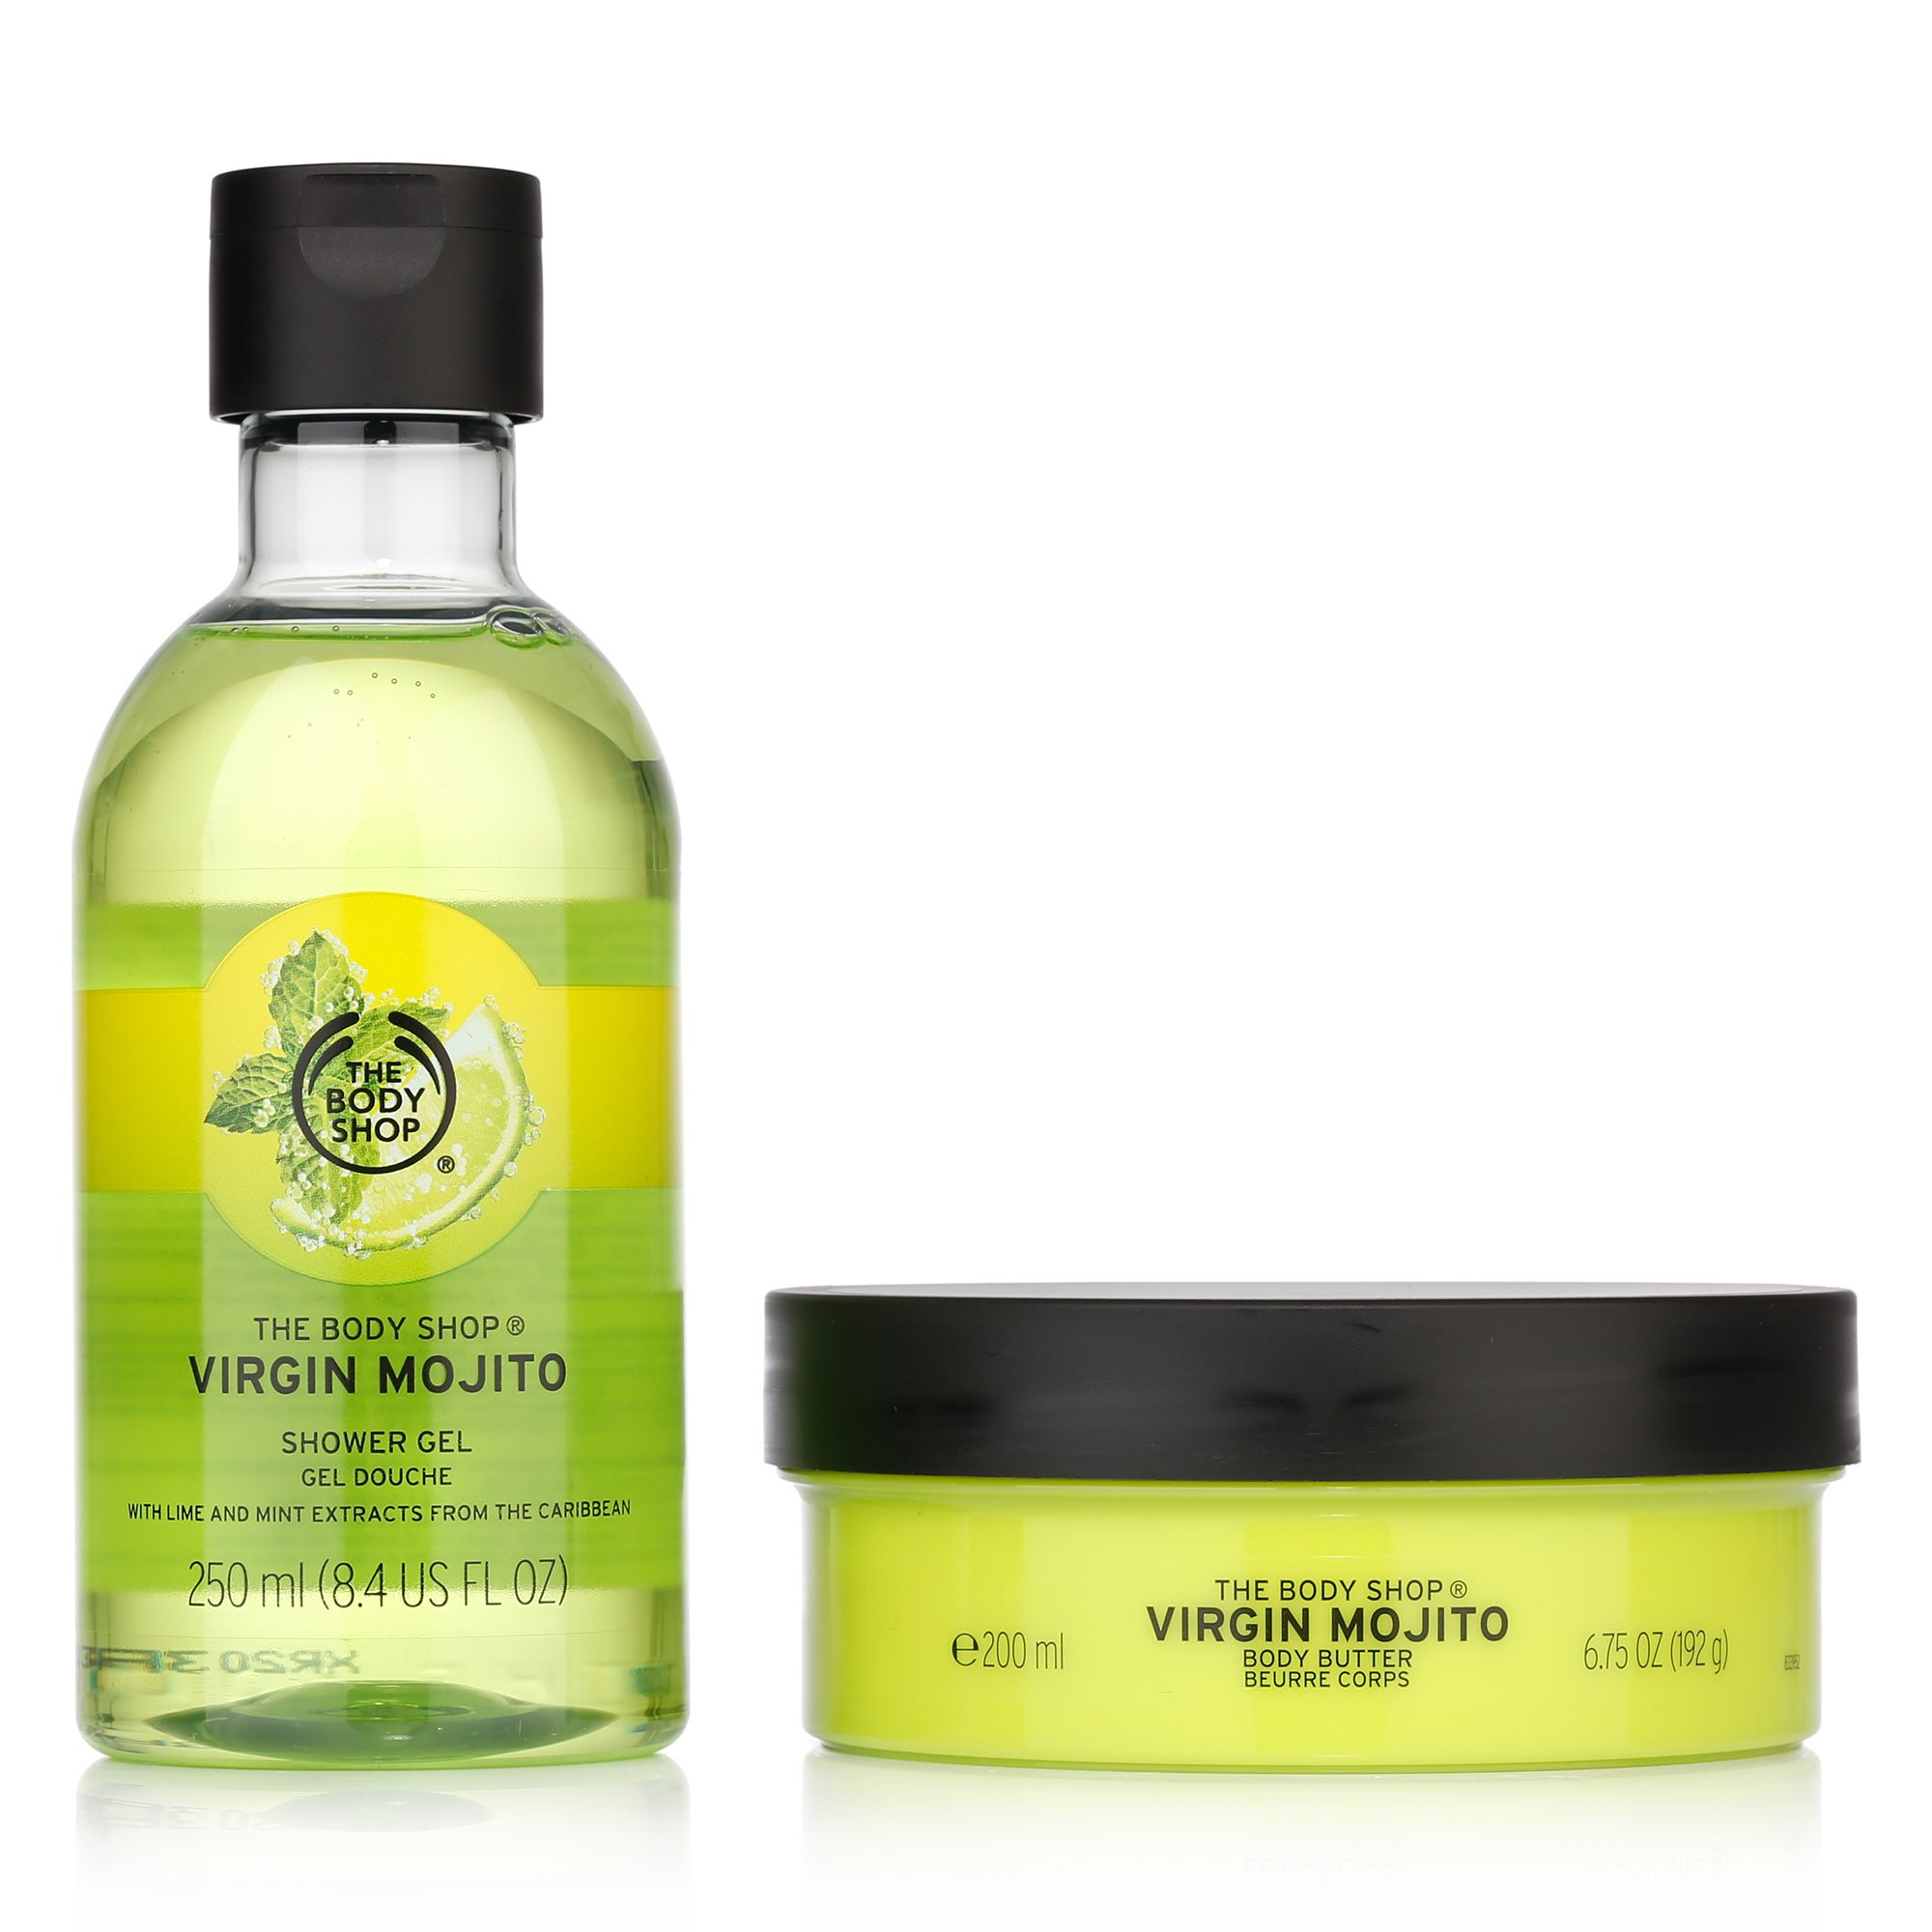 Qvc Vitaform Schuhe Outlet The Body Shop Virgin Mojito Body Butter 200ml And Shower